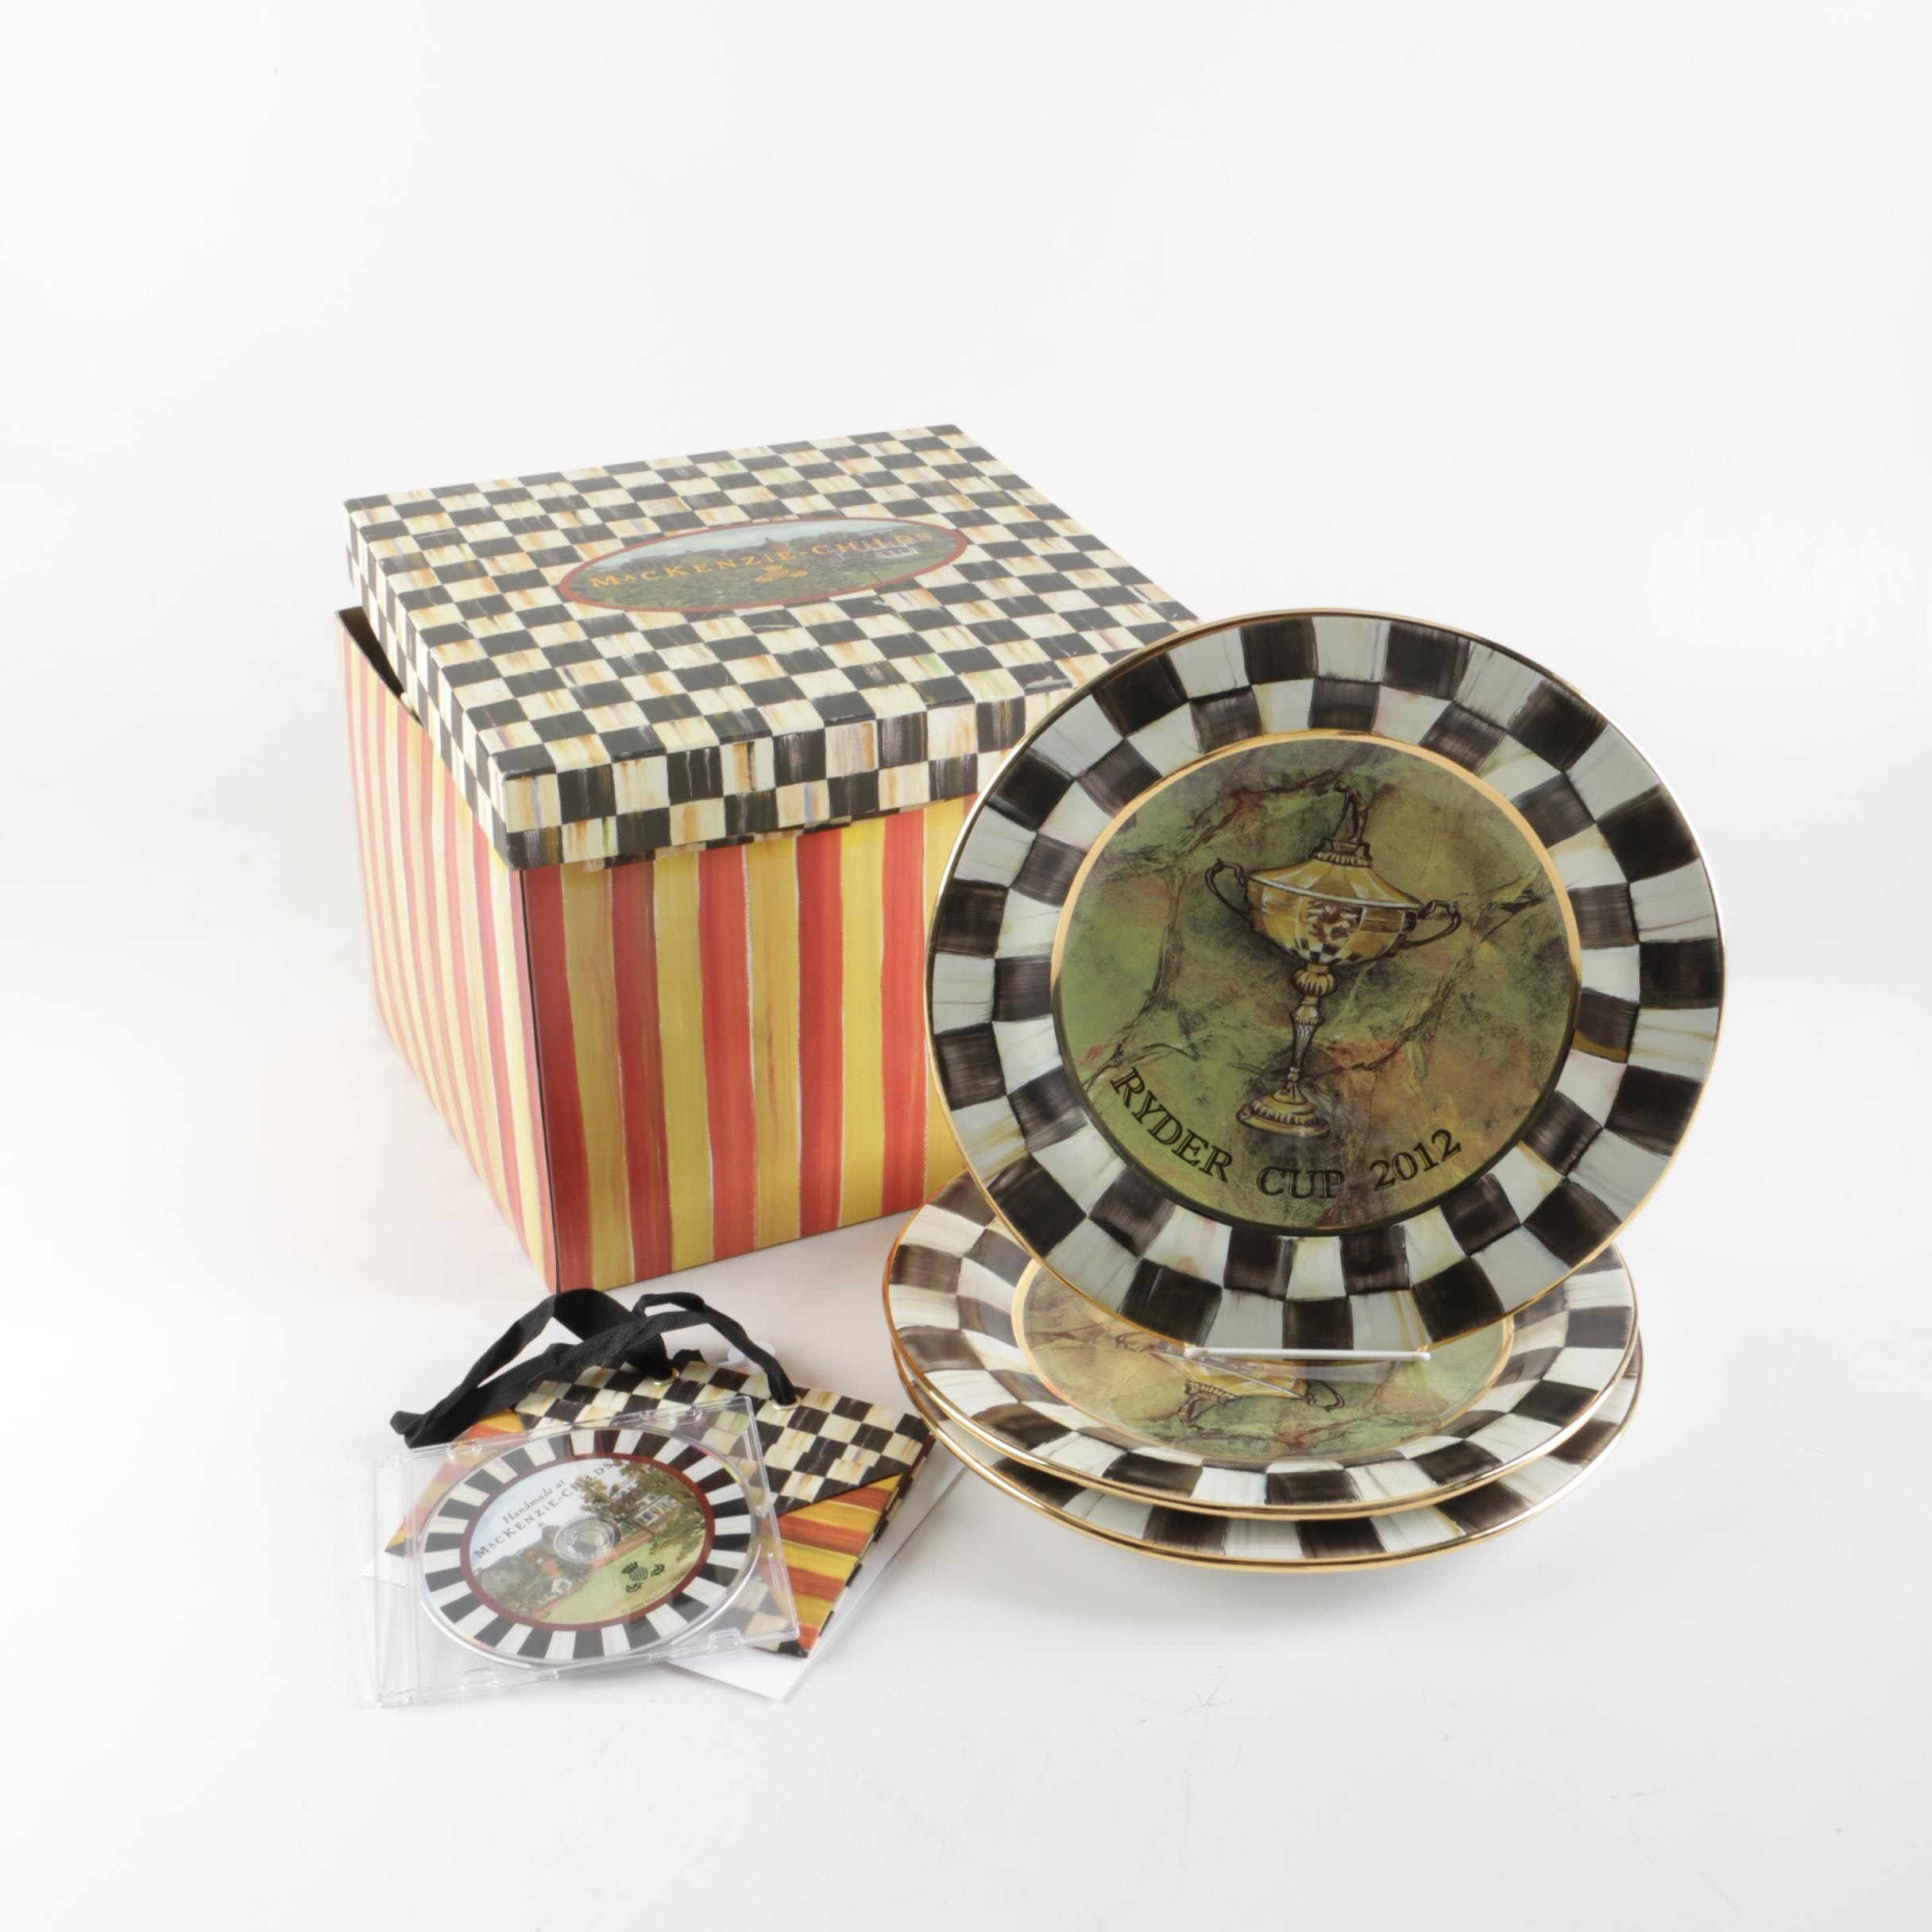 """Decorative MacKenzie-Childs """"Ryder Cup 2012"""" Earthenware Plates"""